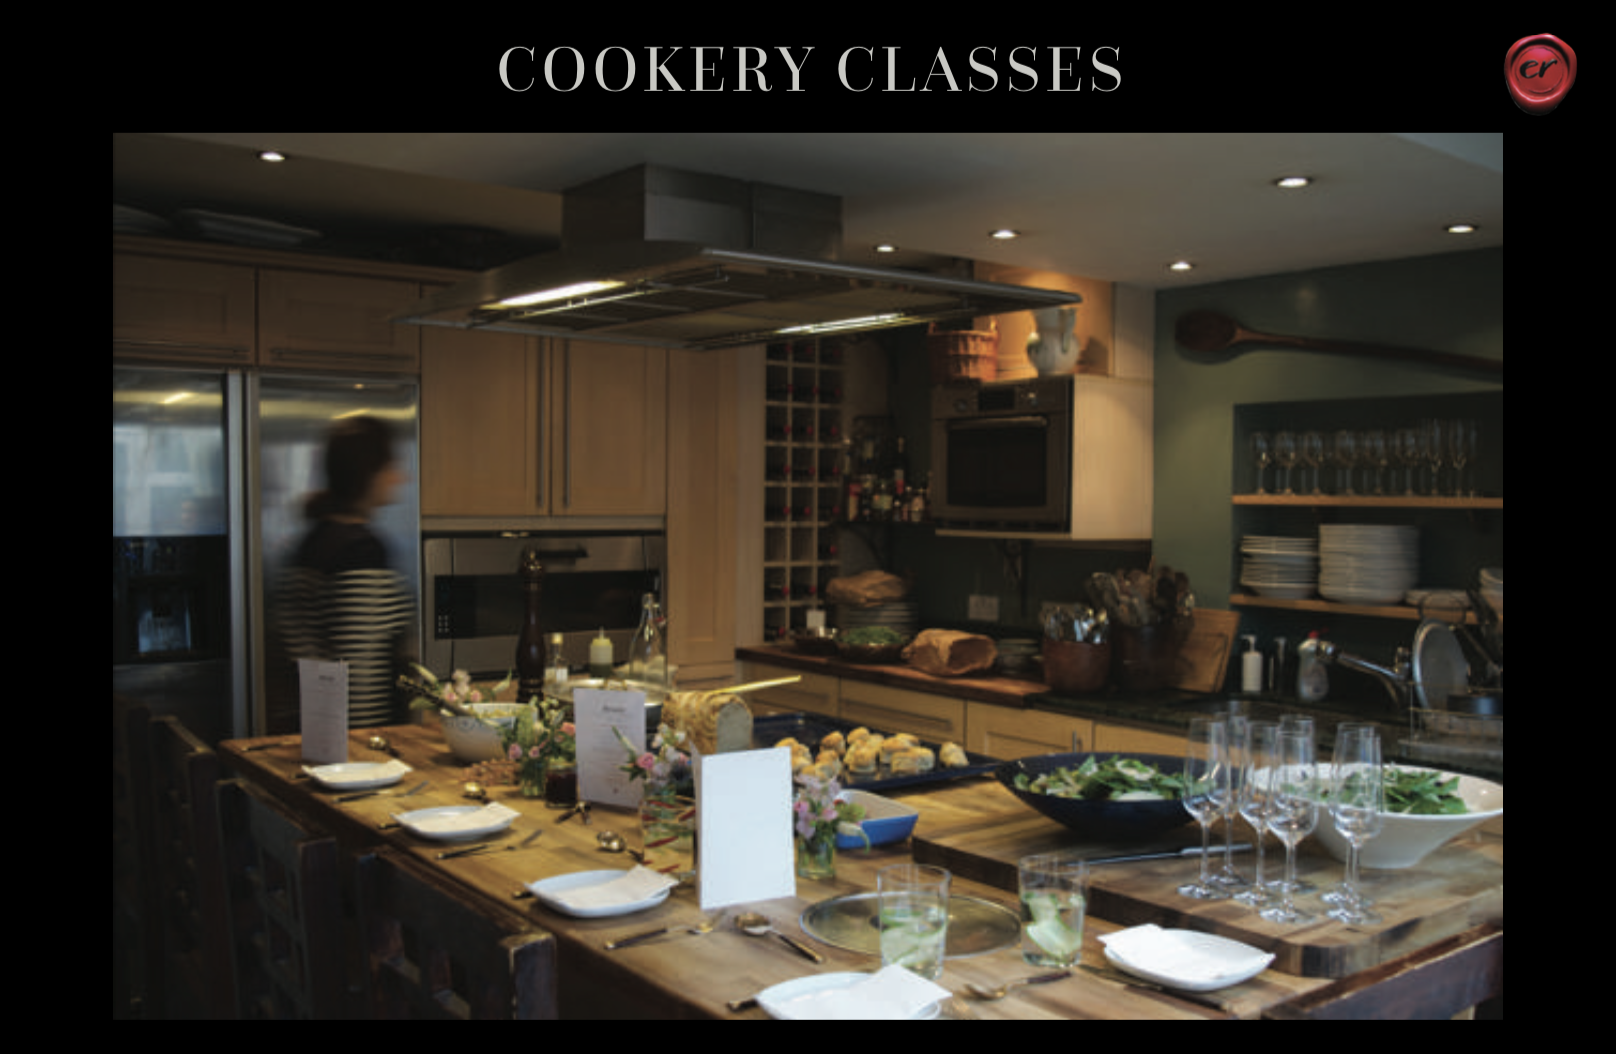 enrica rocca cookery school press kit 5.png